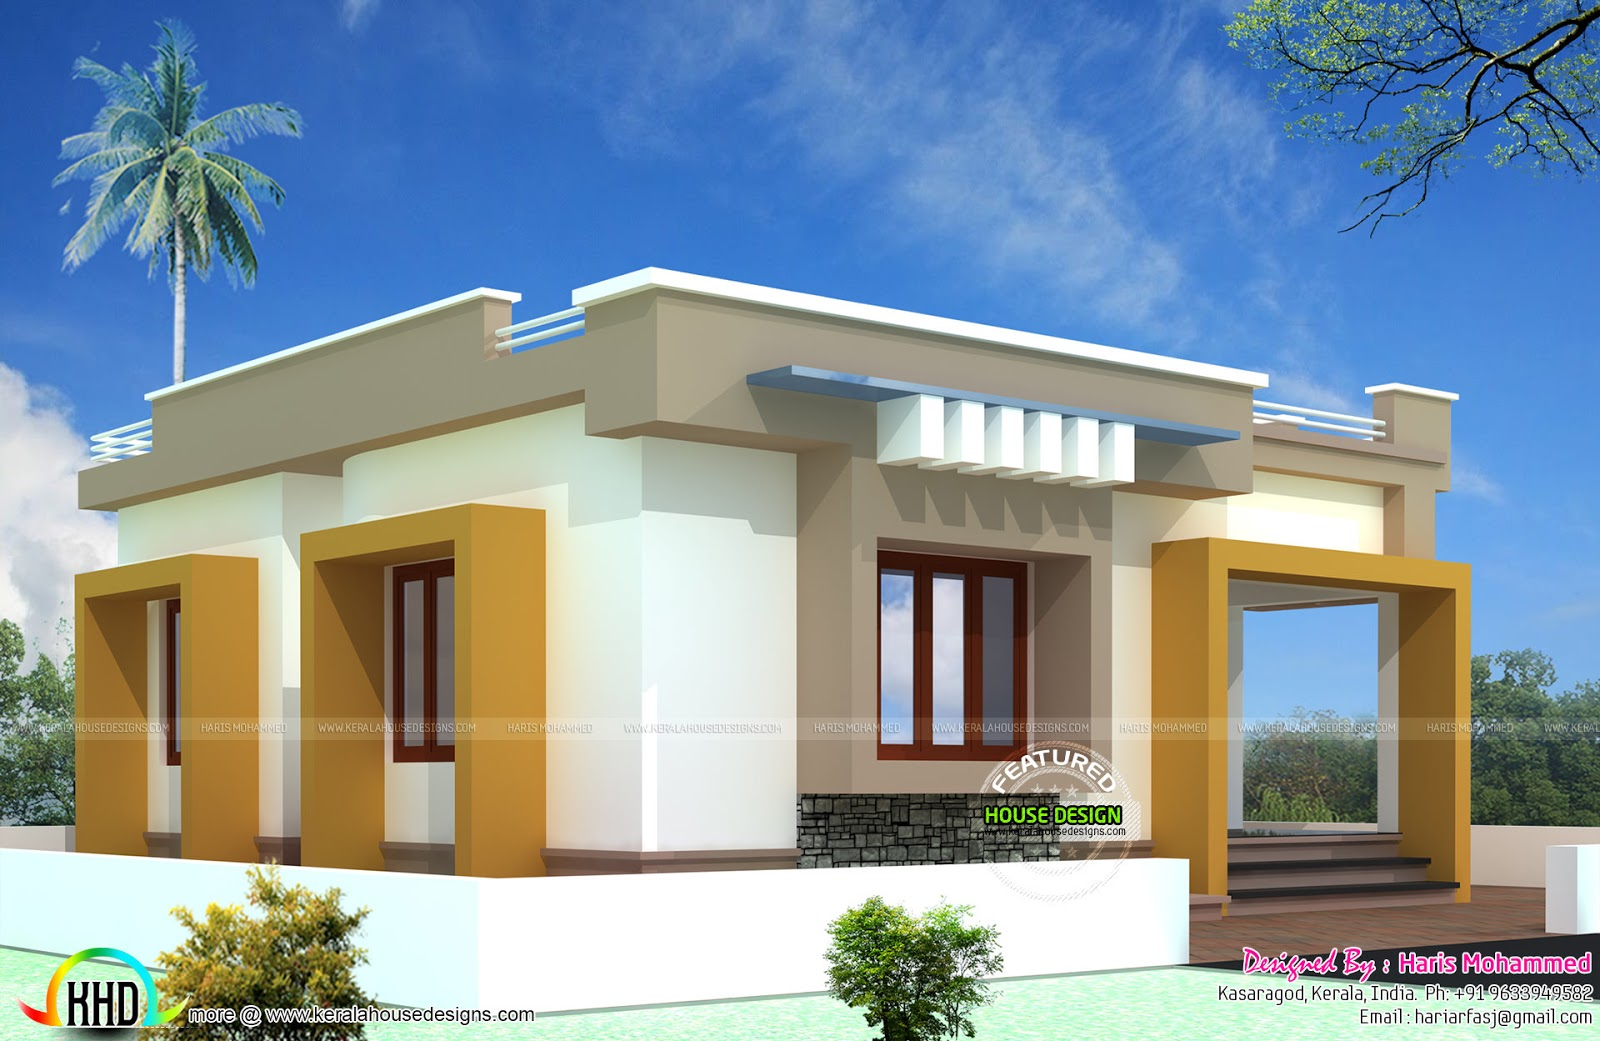 10 lakhs budget house plan kerala home design and floor for House by design